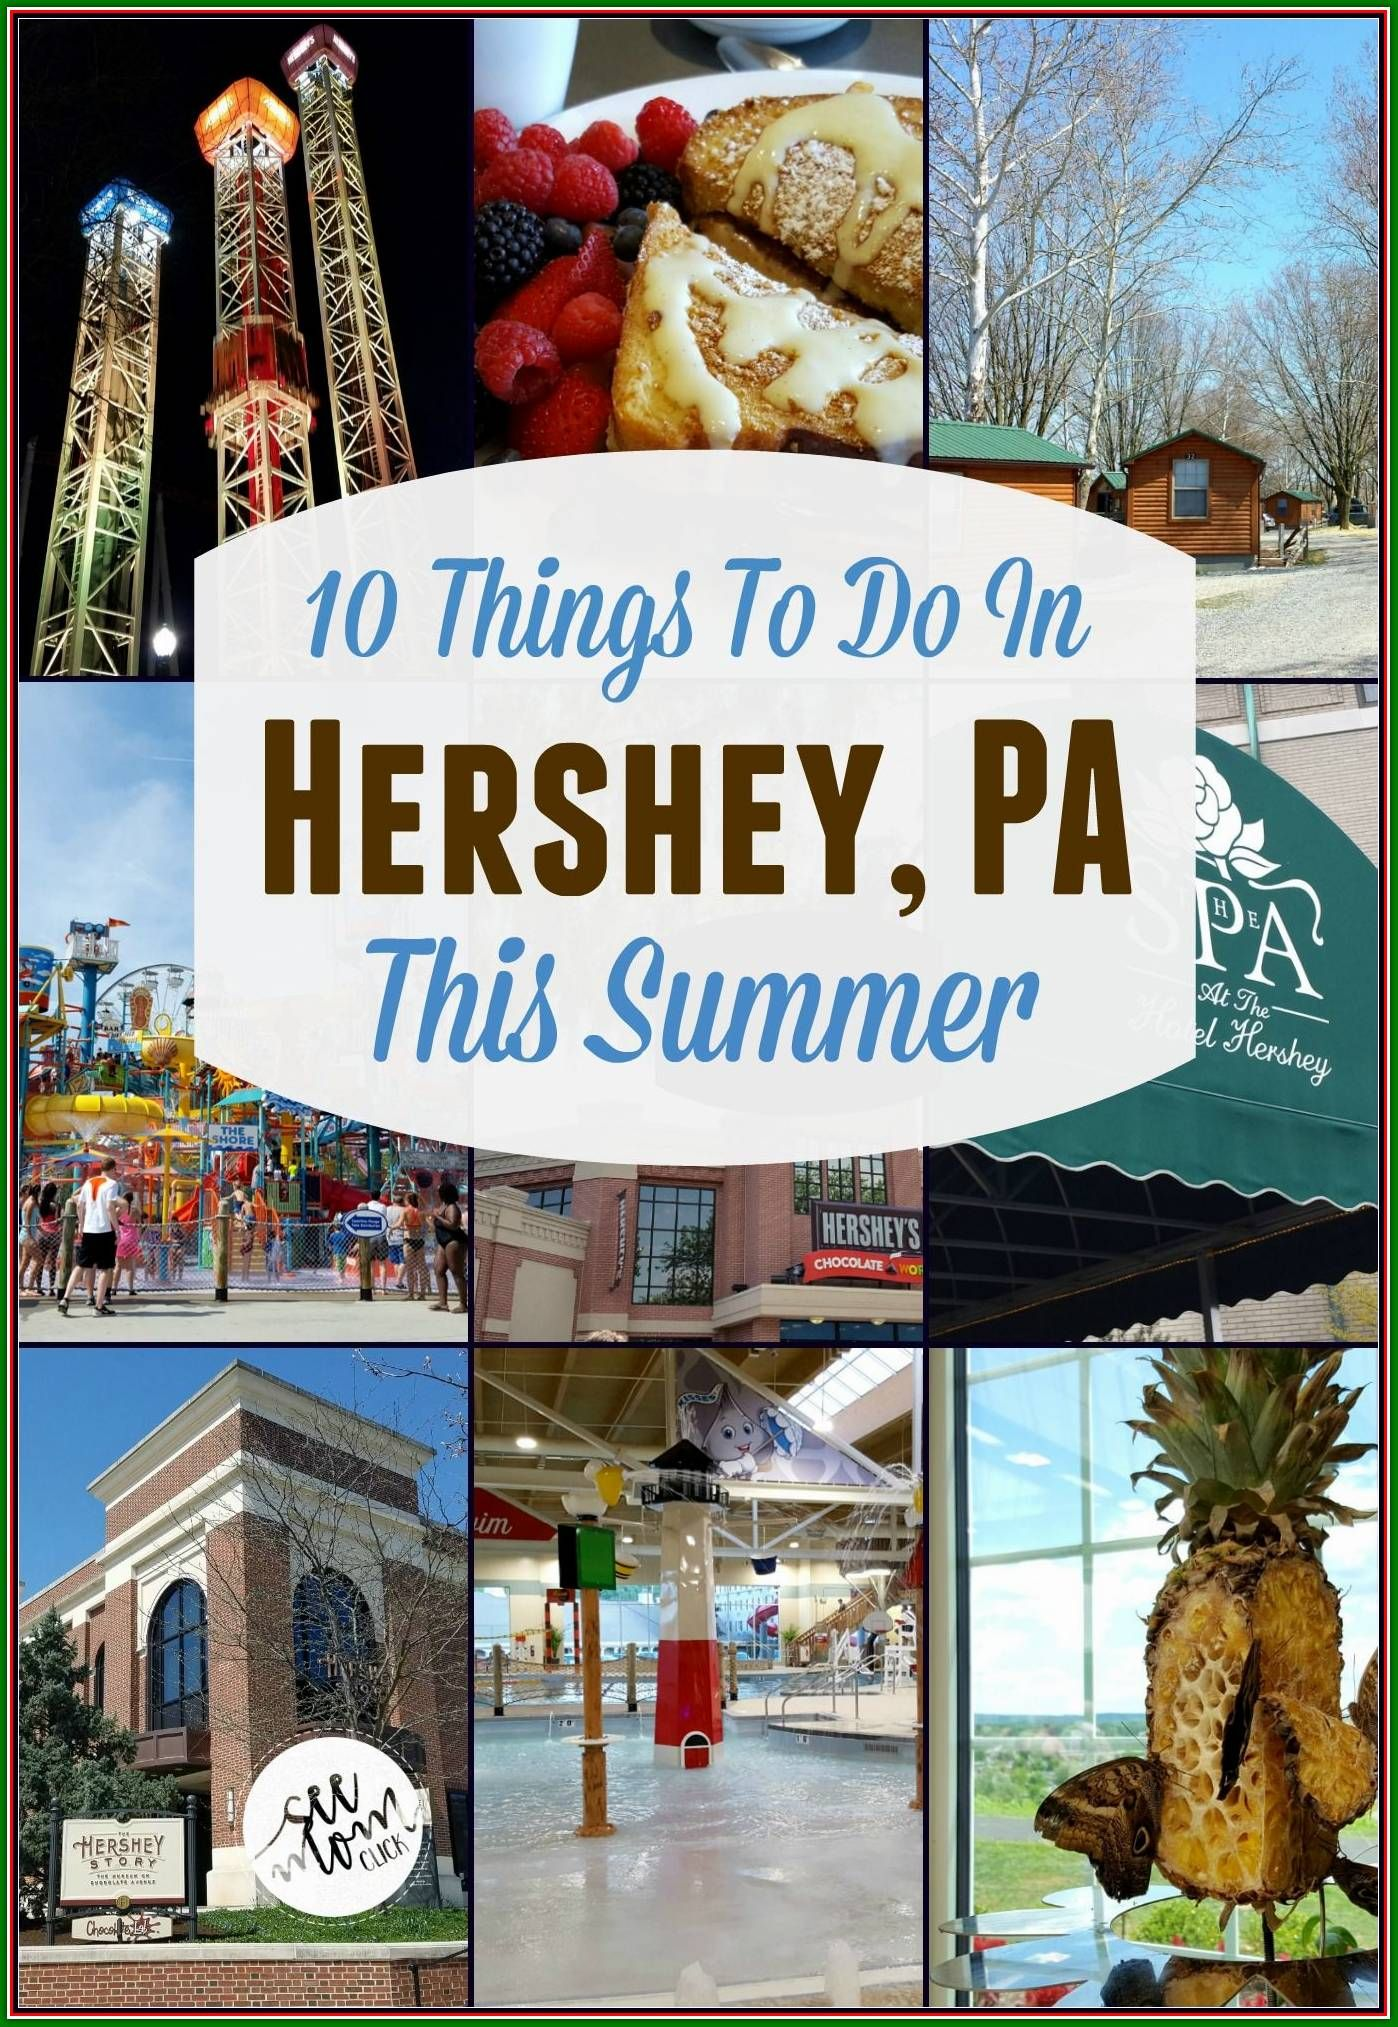 Pin By Tori Atkinson On Vacation Destination In 2020 Family Travel Destinations Pennsylvania Travel Family Travel